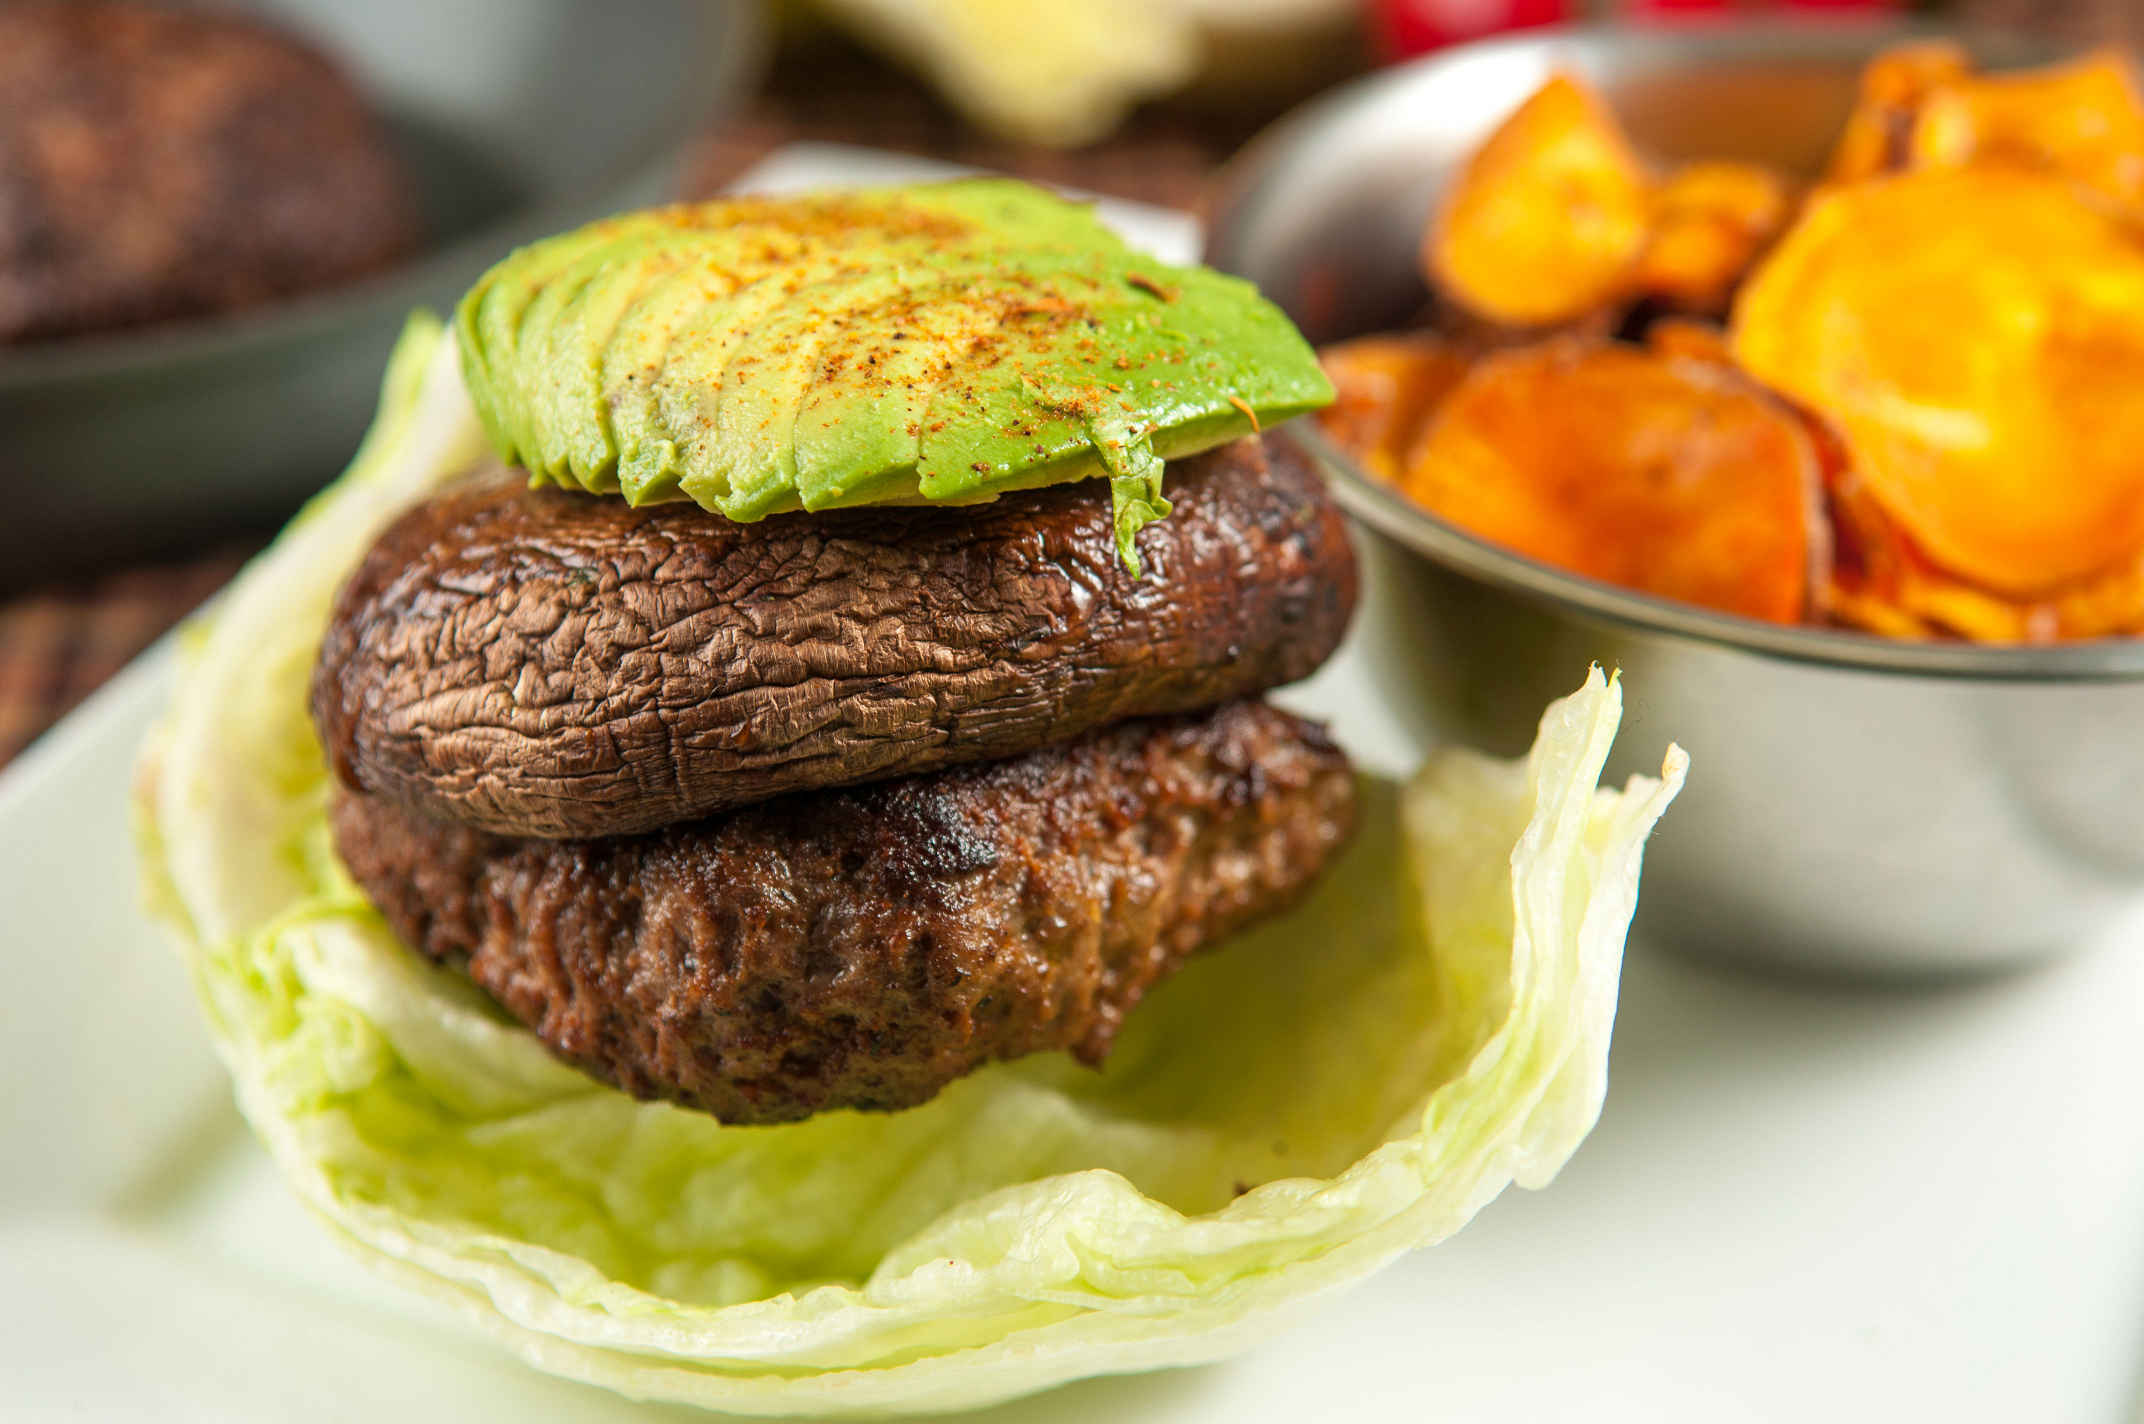 Lettuce_wrapped_burger_plated